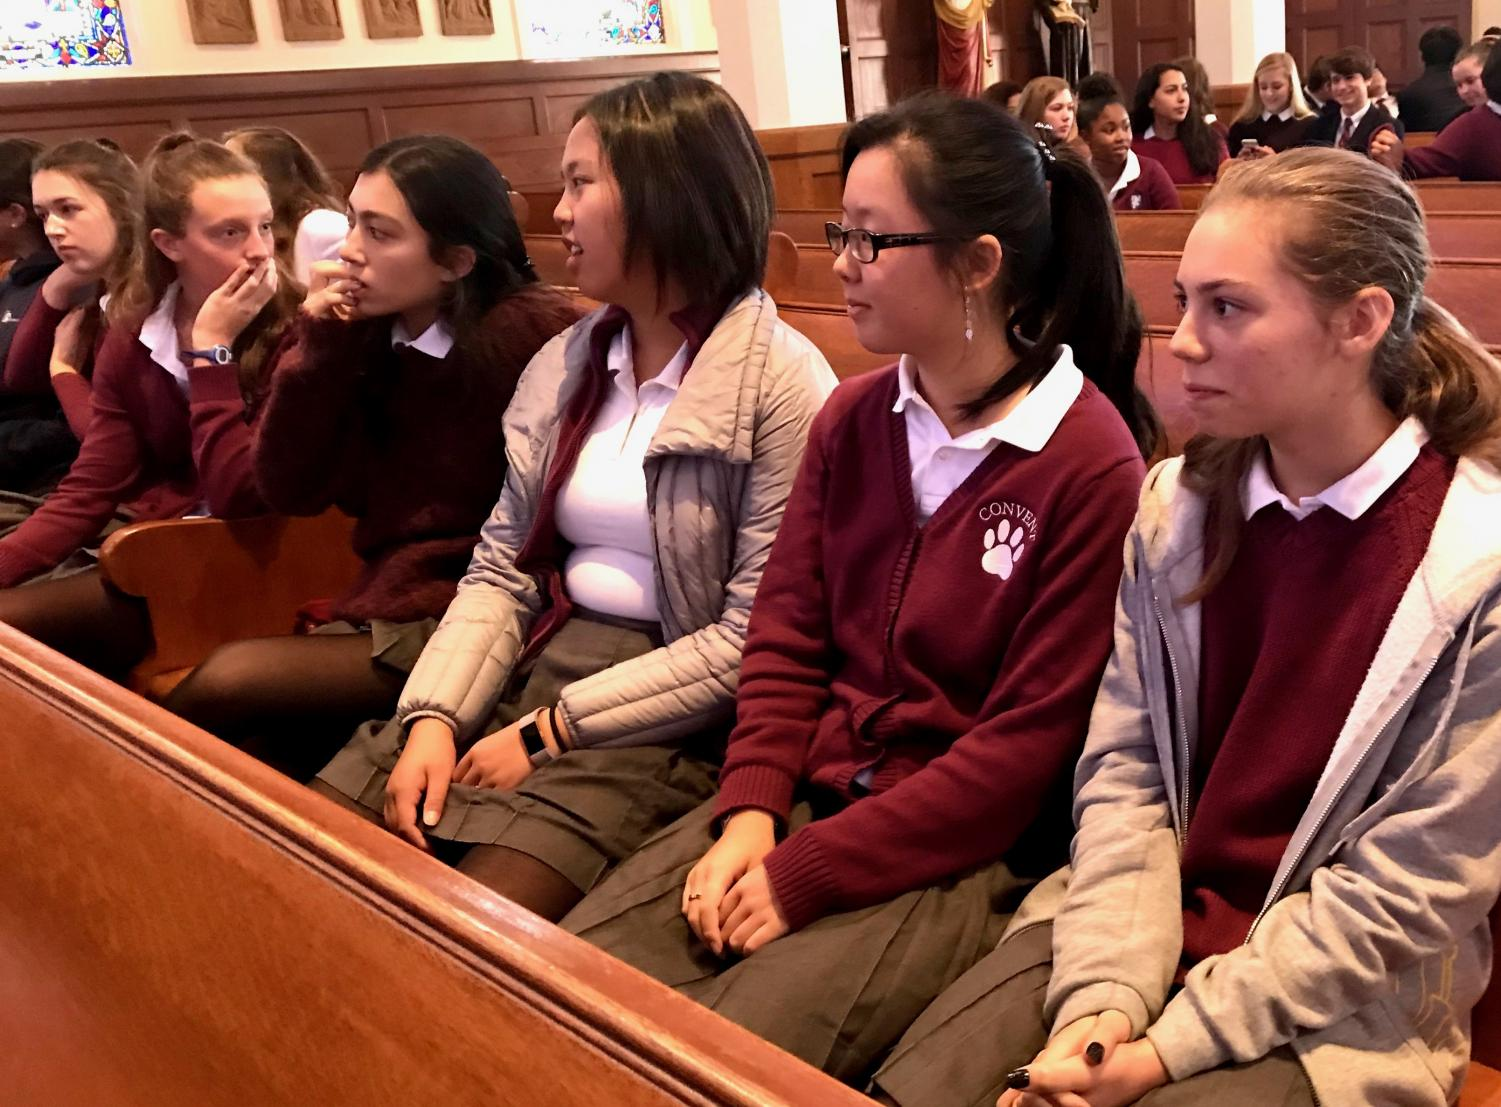 Sophomores Zoe Hinks, Michelle Wang and Abby Widjanarko wait for Mass to begin. The Mass was coed, so students from the Broadway Campus had to wait for students coming from the Pine-Octavia campus arrive.